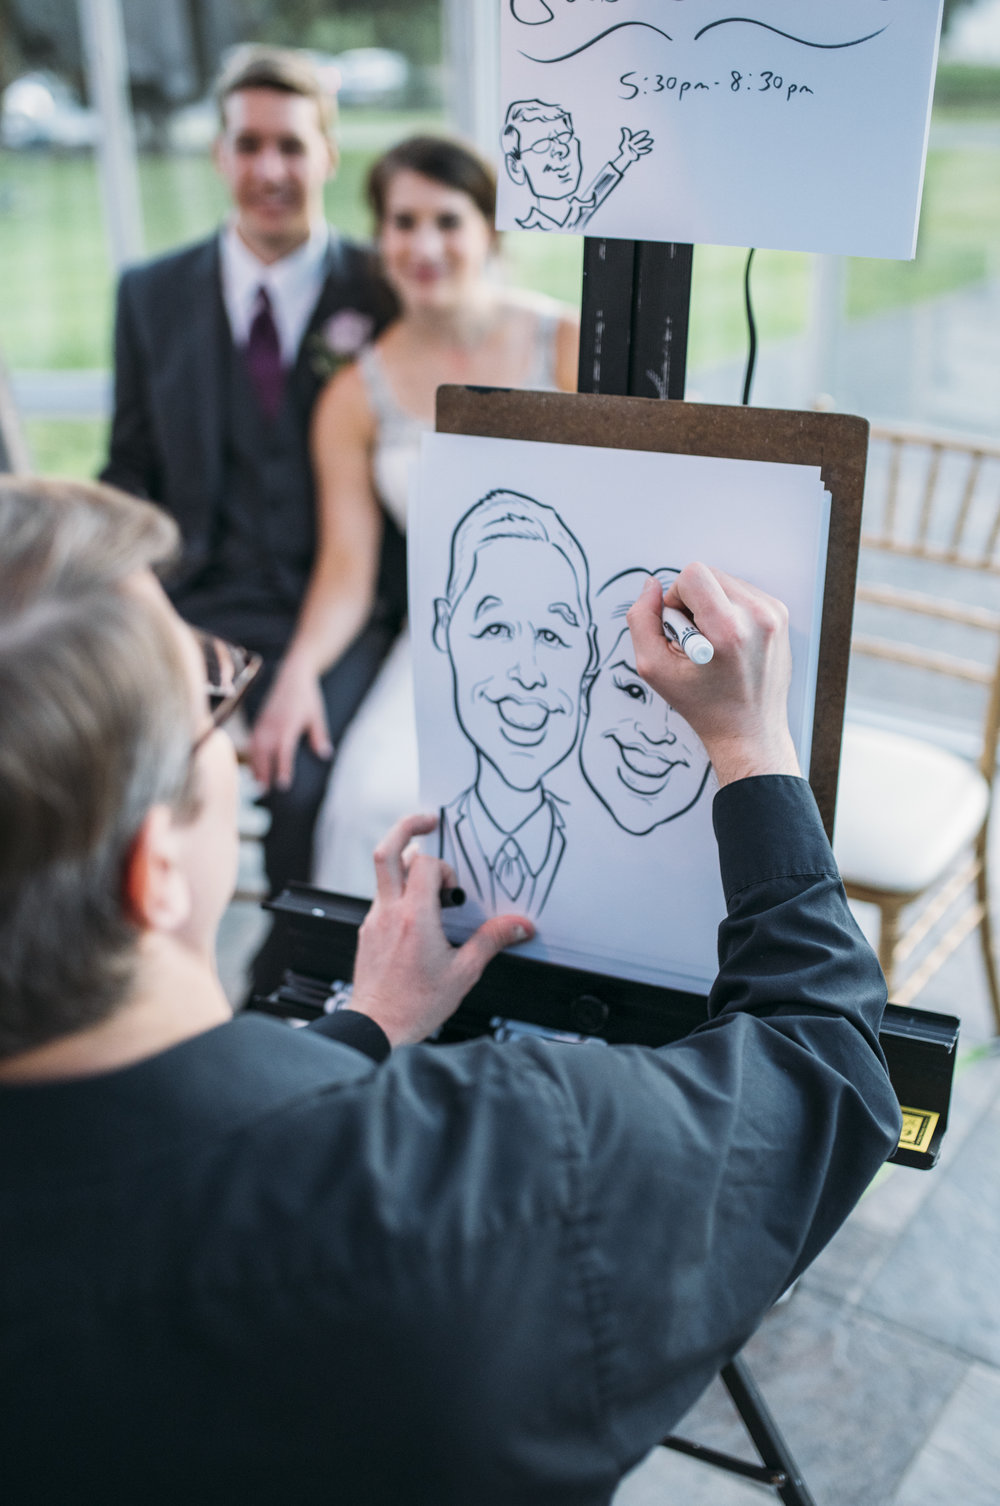 Instead of a Photo Booth, these two opted for a caricature artist! Such a fun idea.